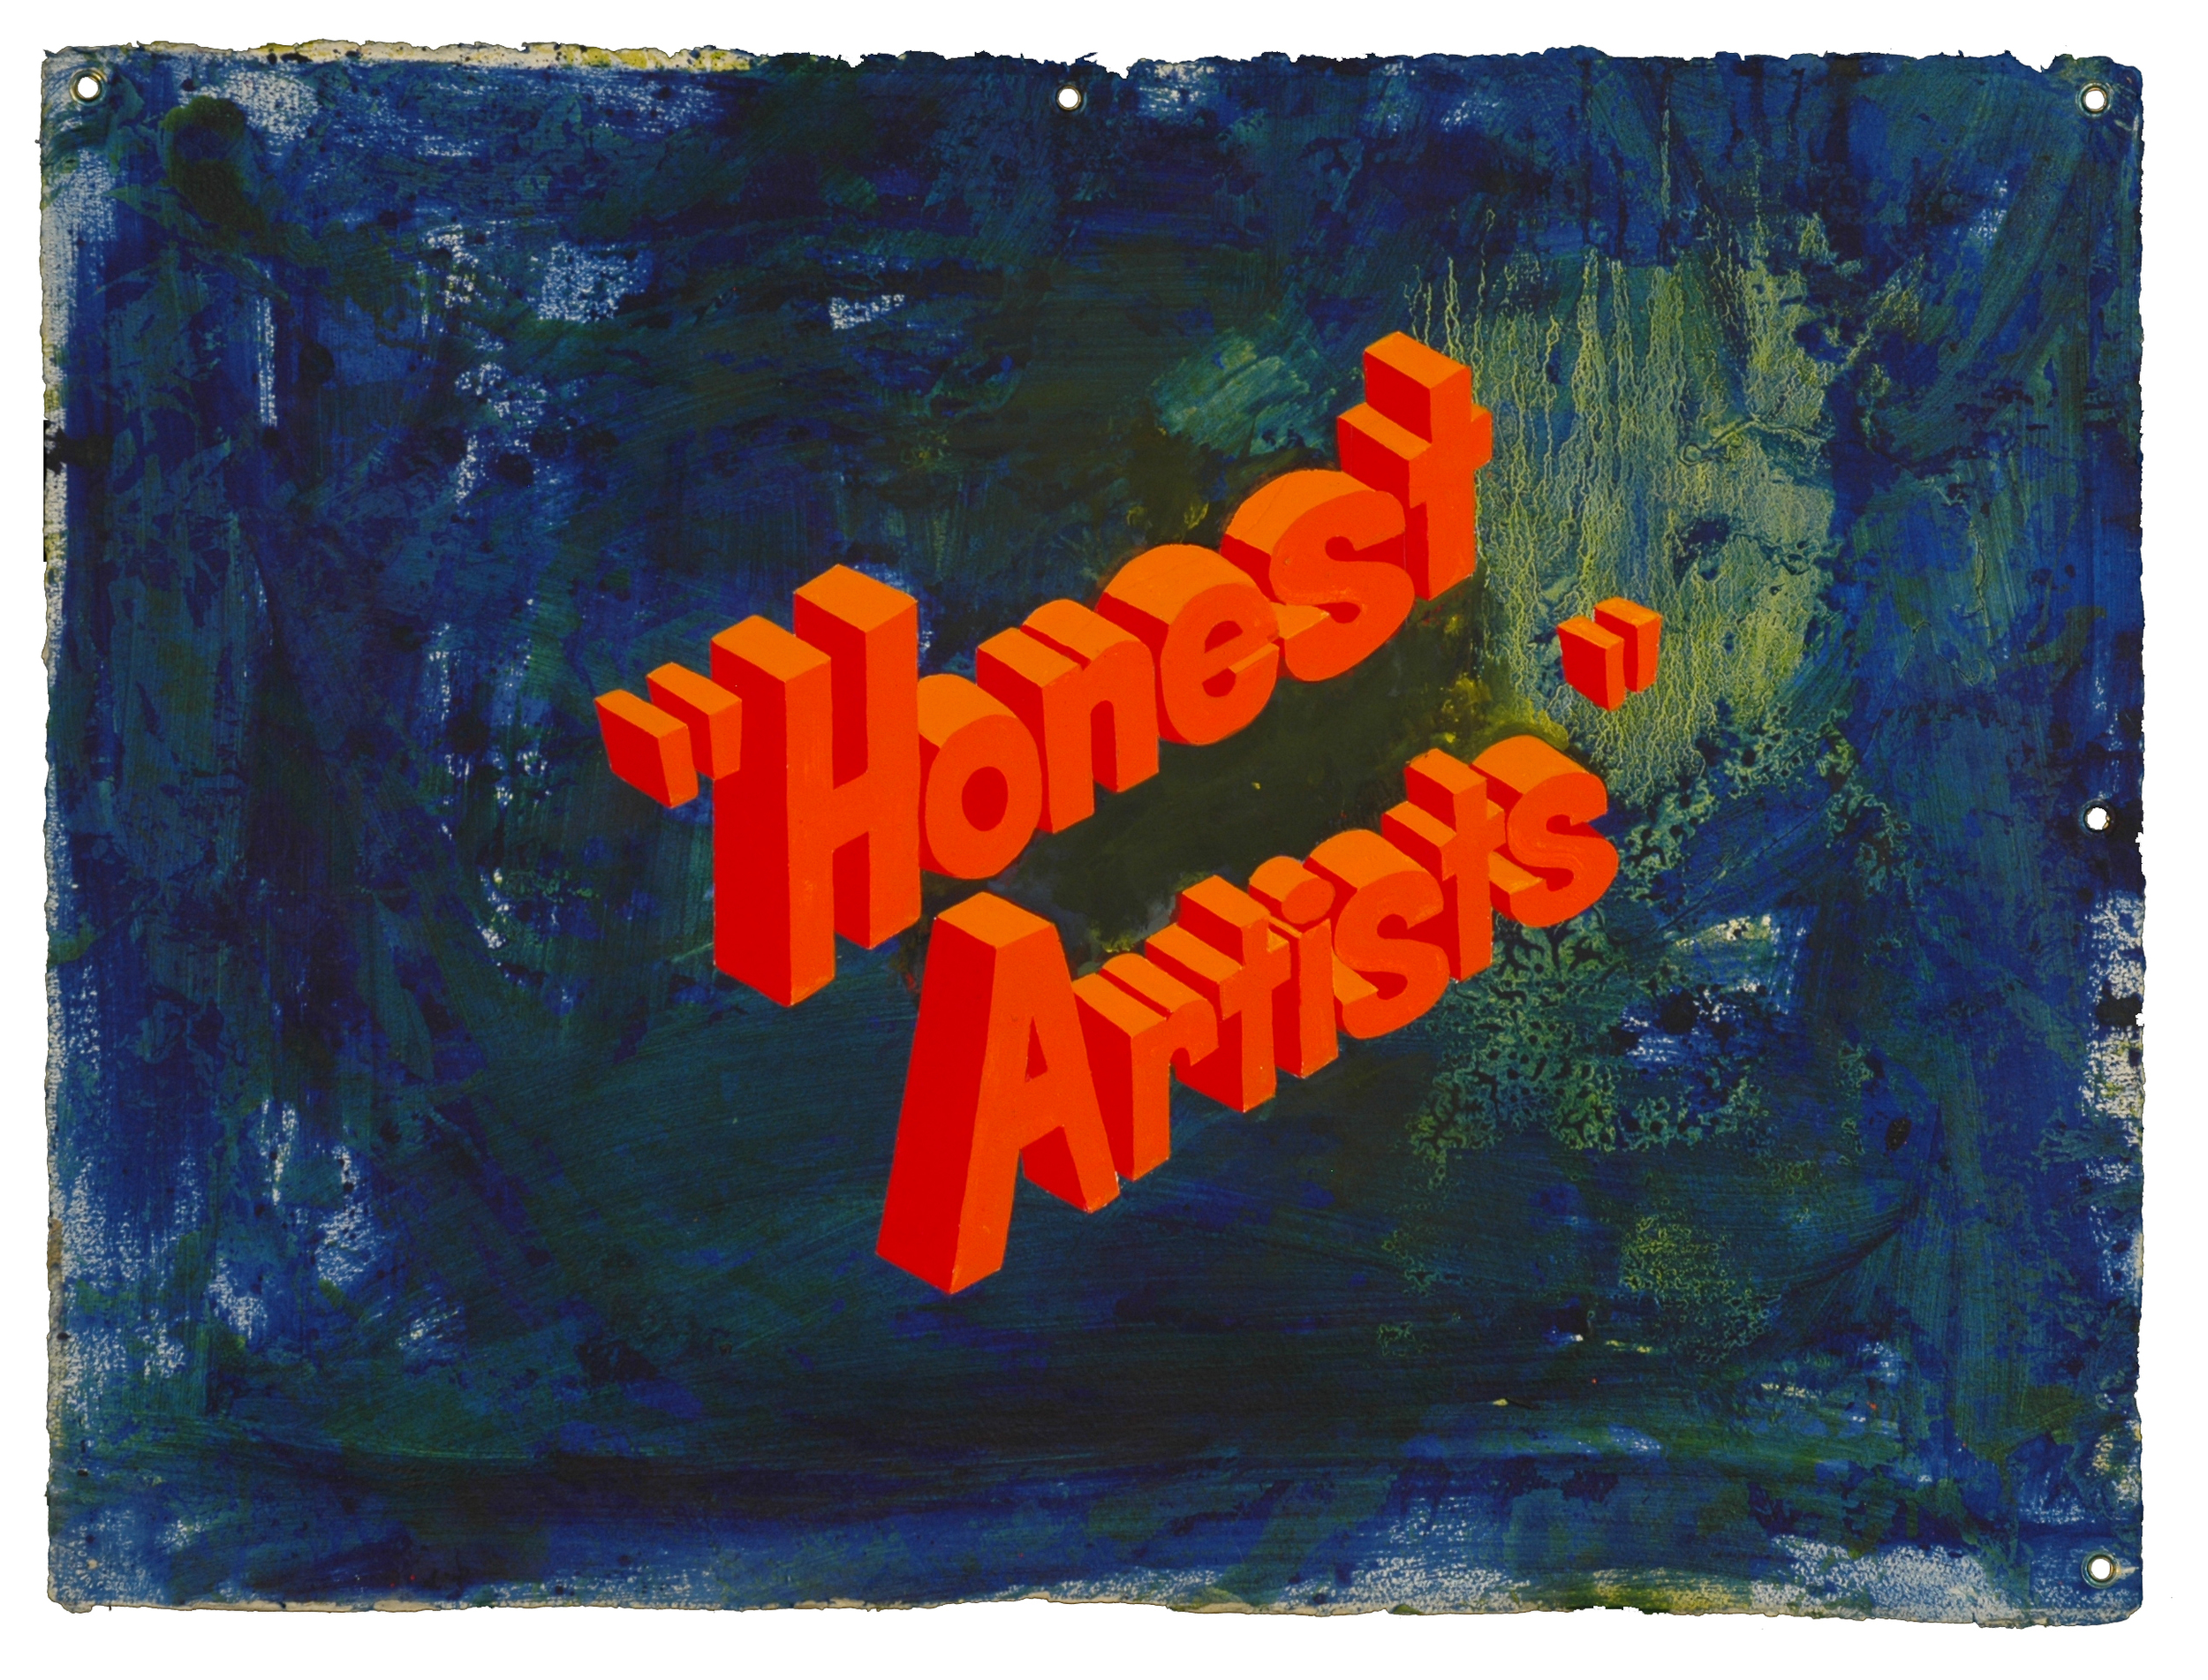 WAYNE WHITE, Honest Artists, 2007, acrylic on paper, 22.5 x 30 inches